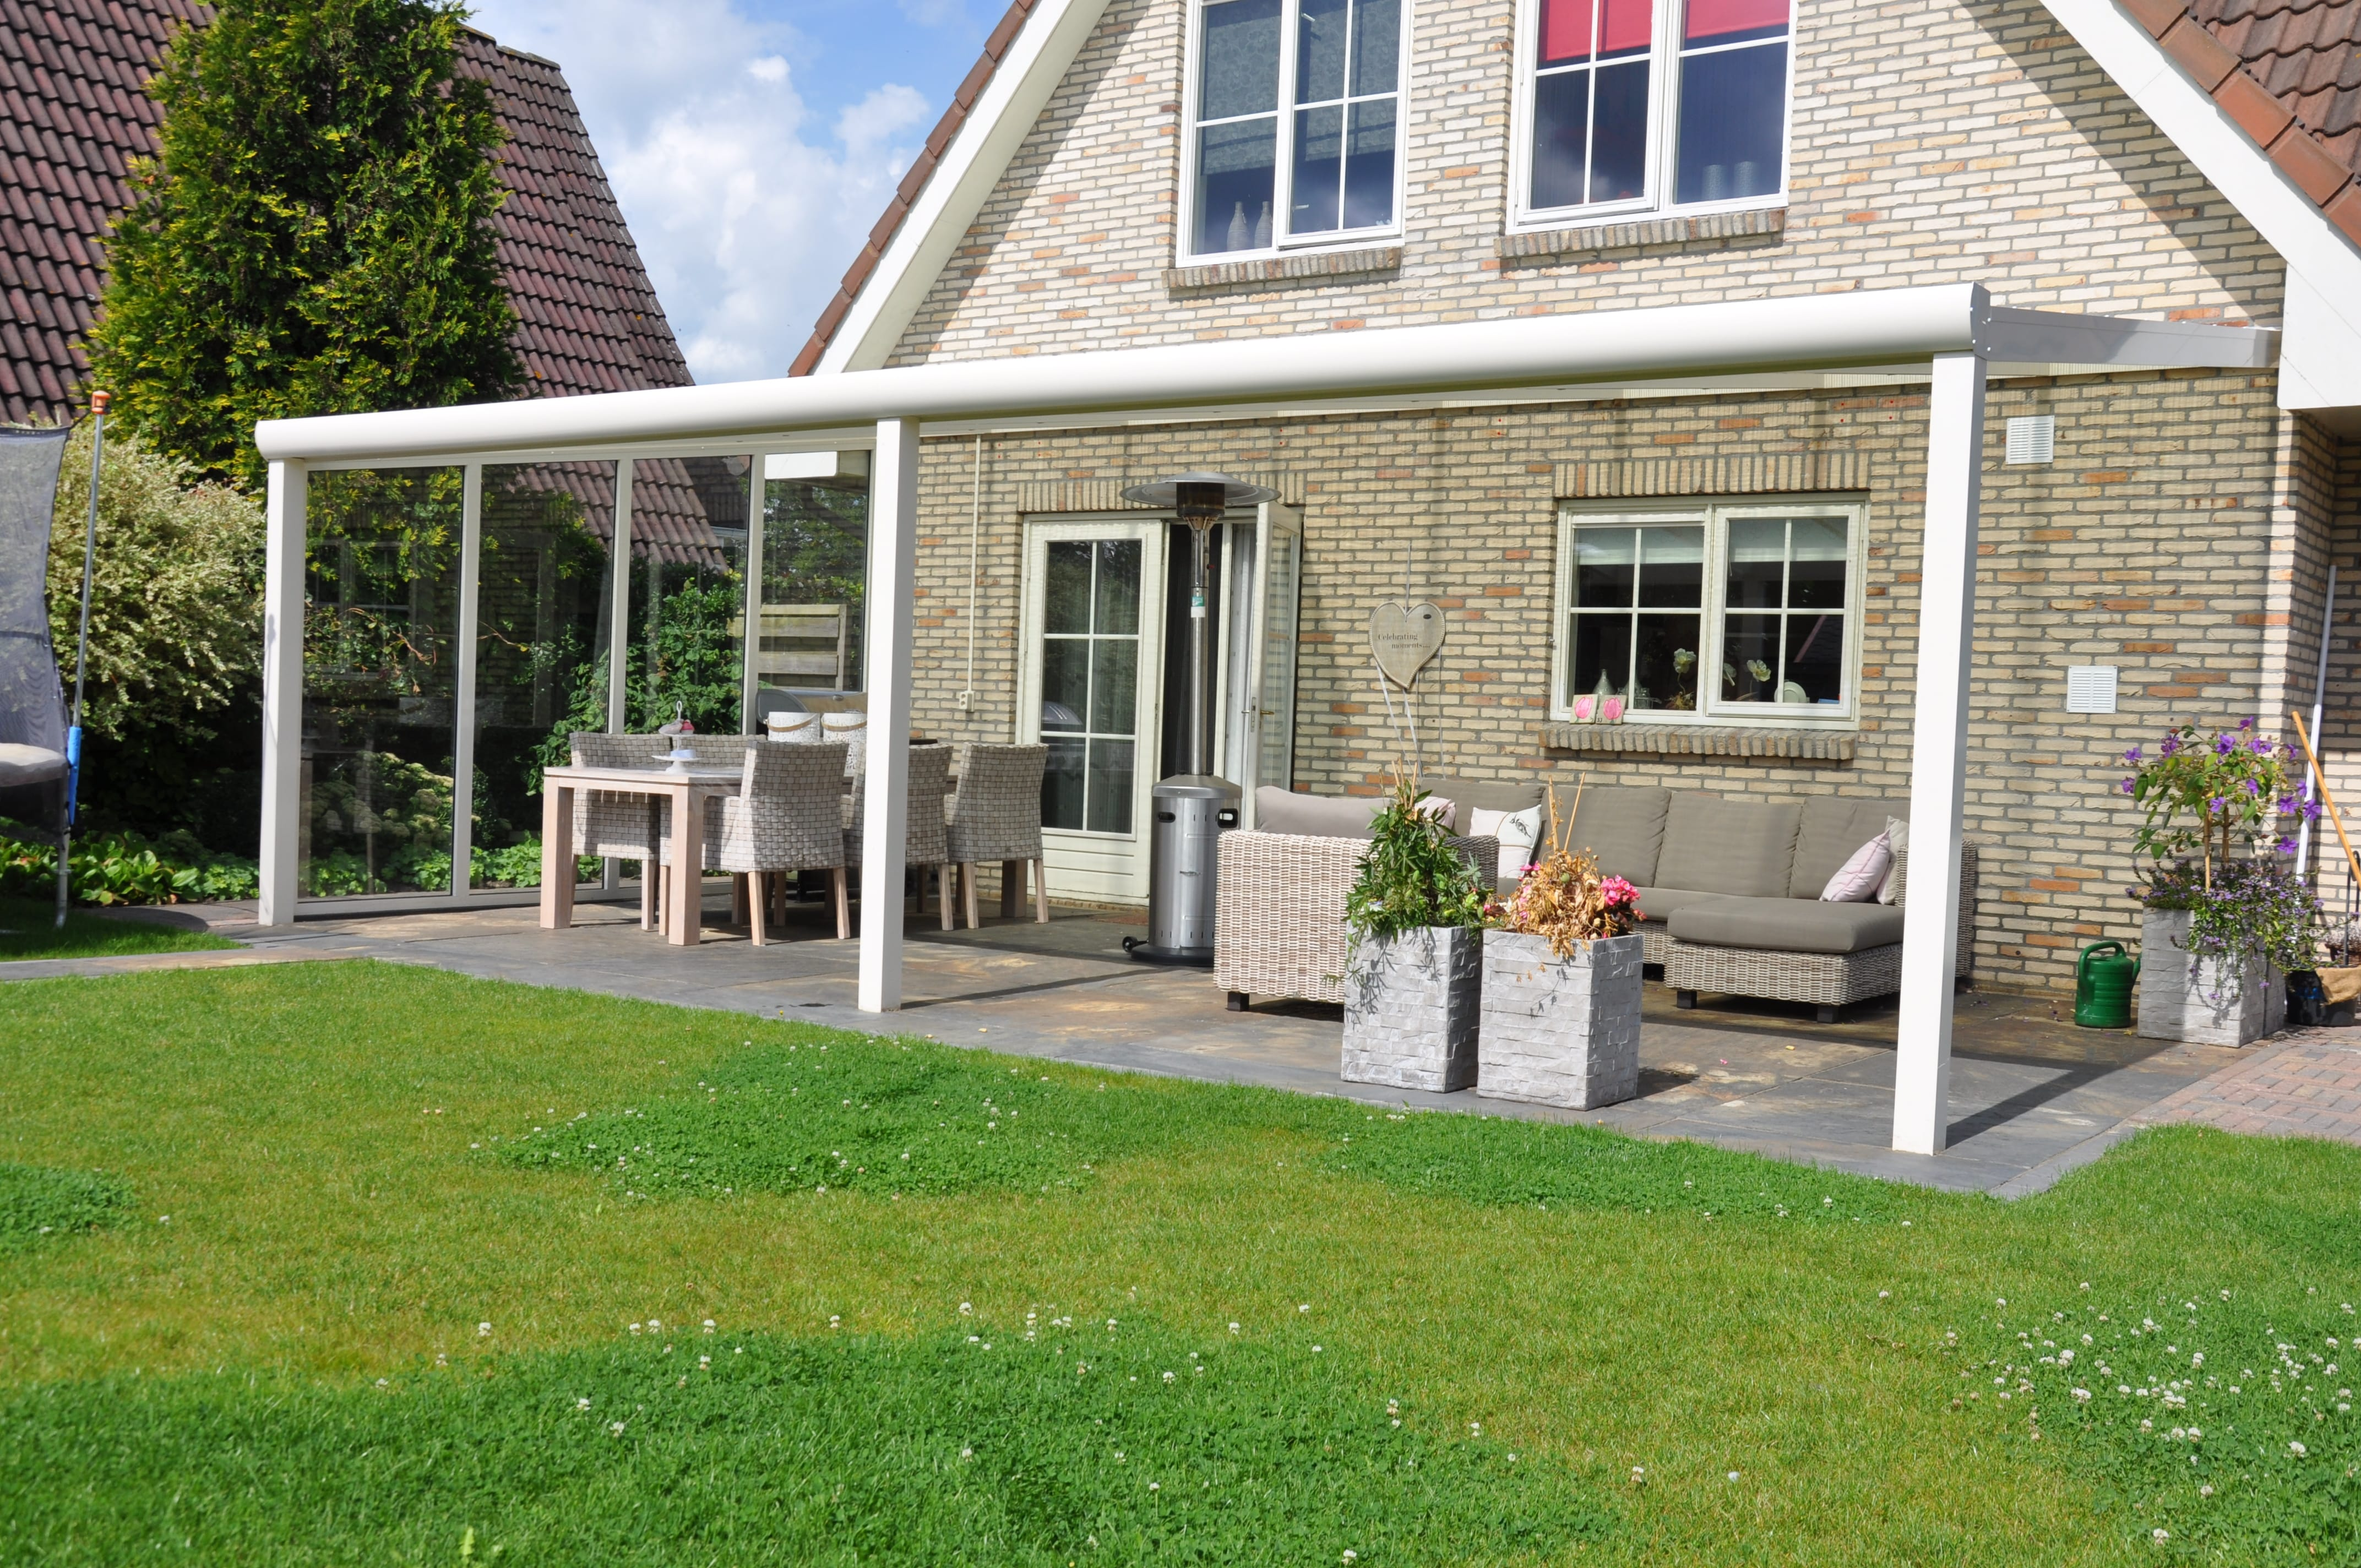 Garden veranda gallery tuin tuindeco blog for Outdoor verandah designs